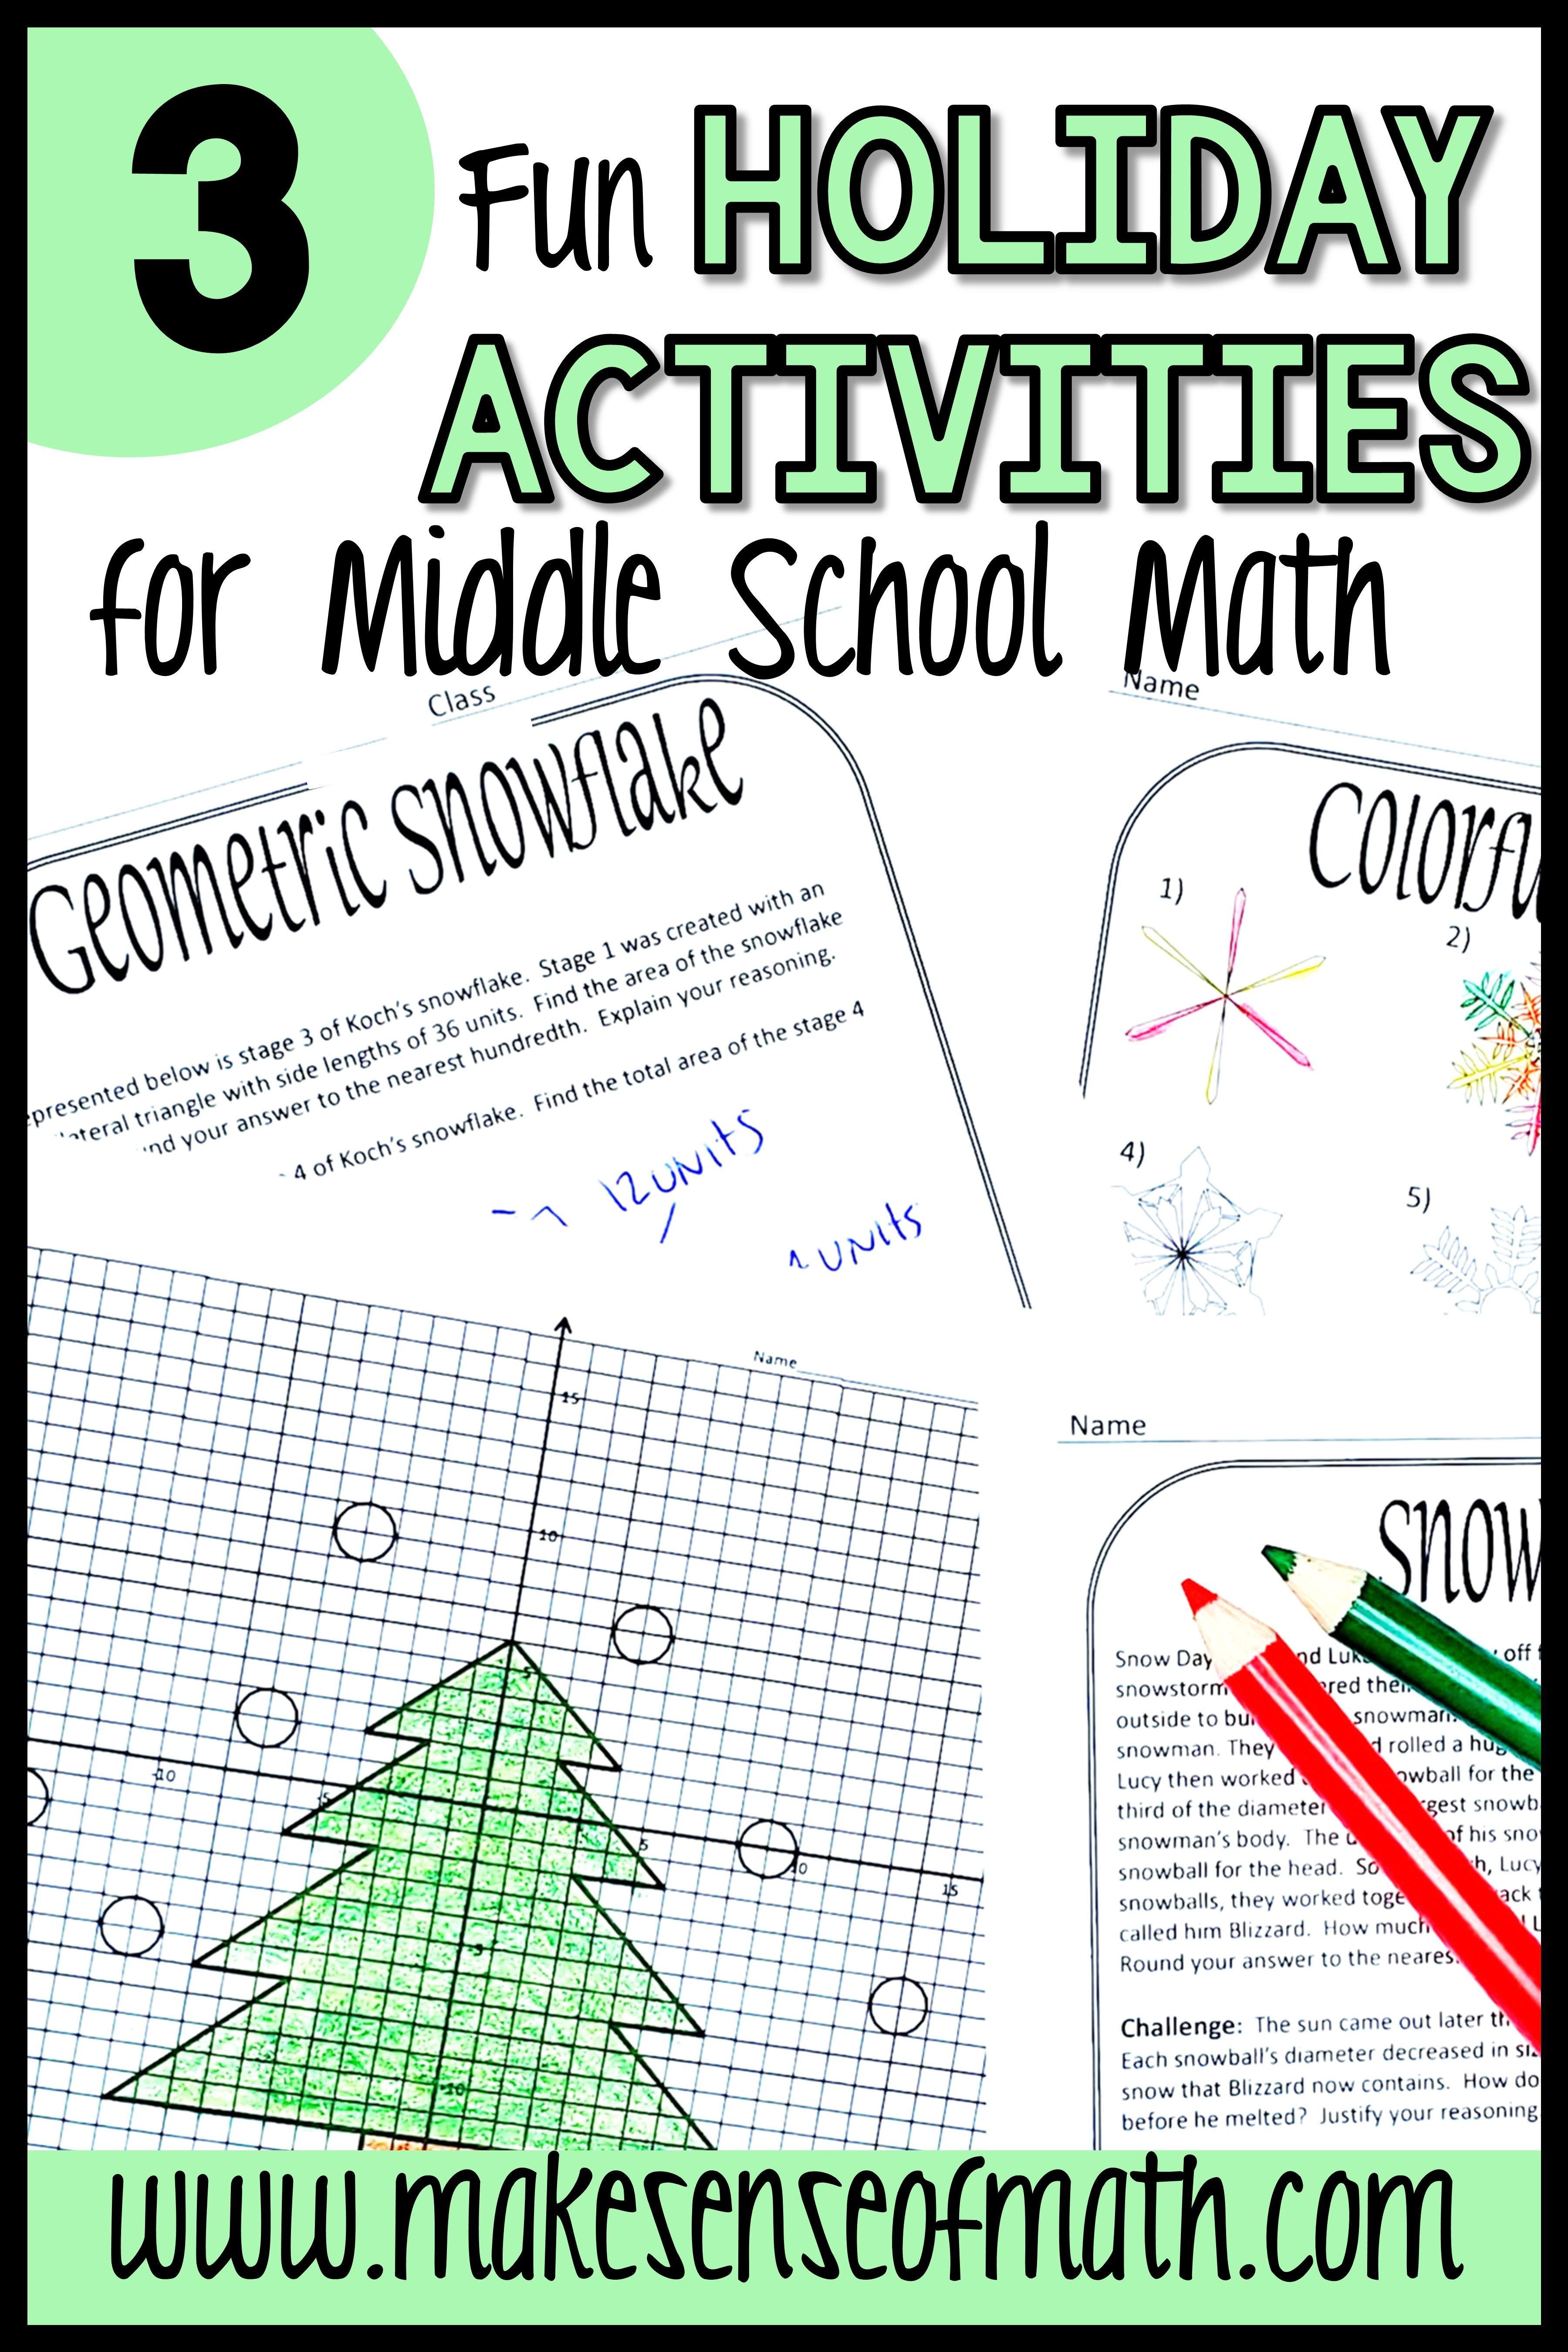 Holiday Math Activities Middle School Maths Activities Middle School Math Games Middle School Holiday Math Activities [ 5400 x 3600 Pixel ]